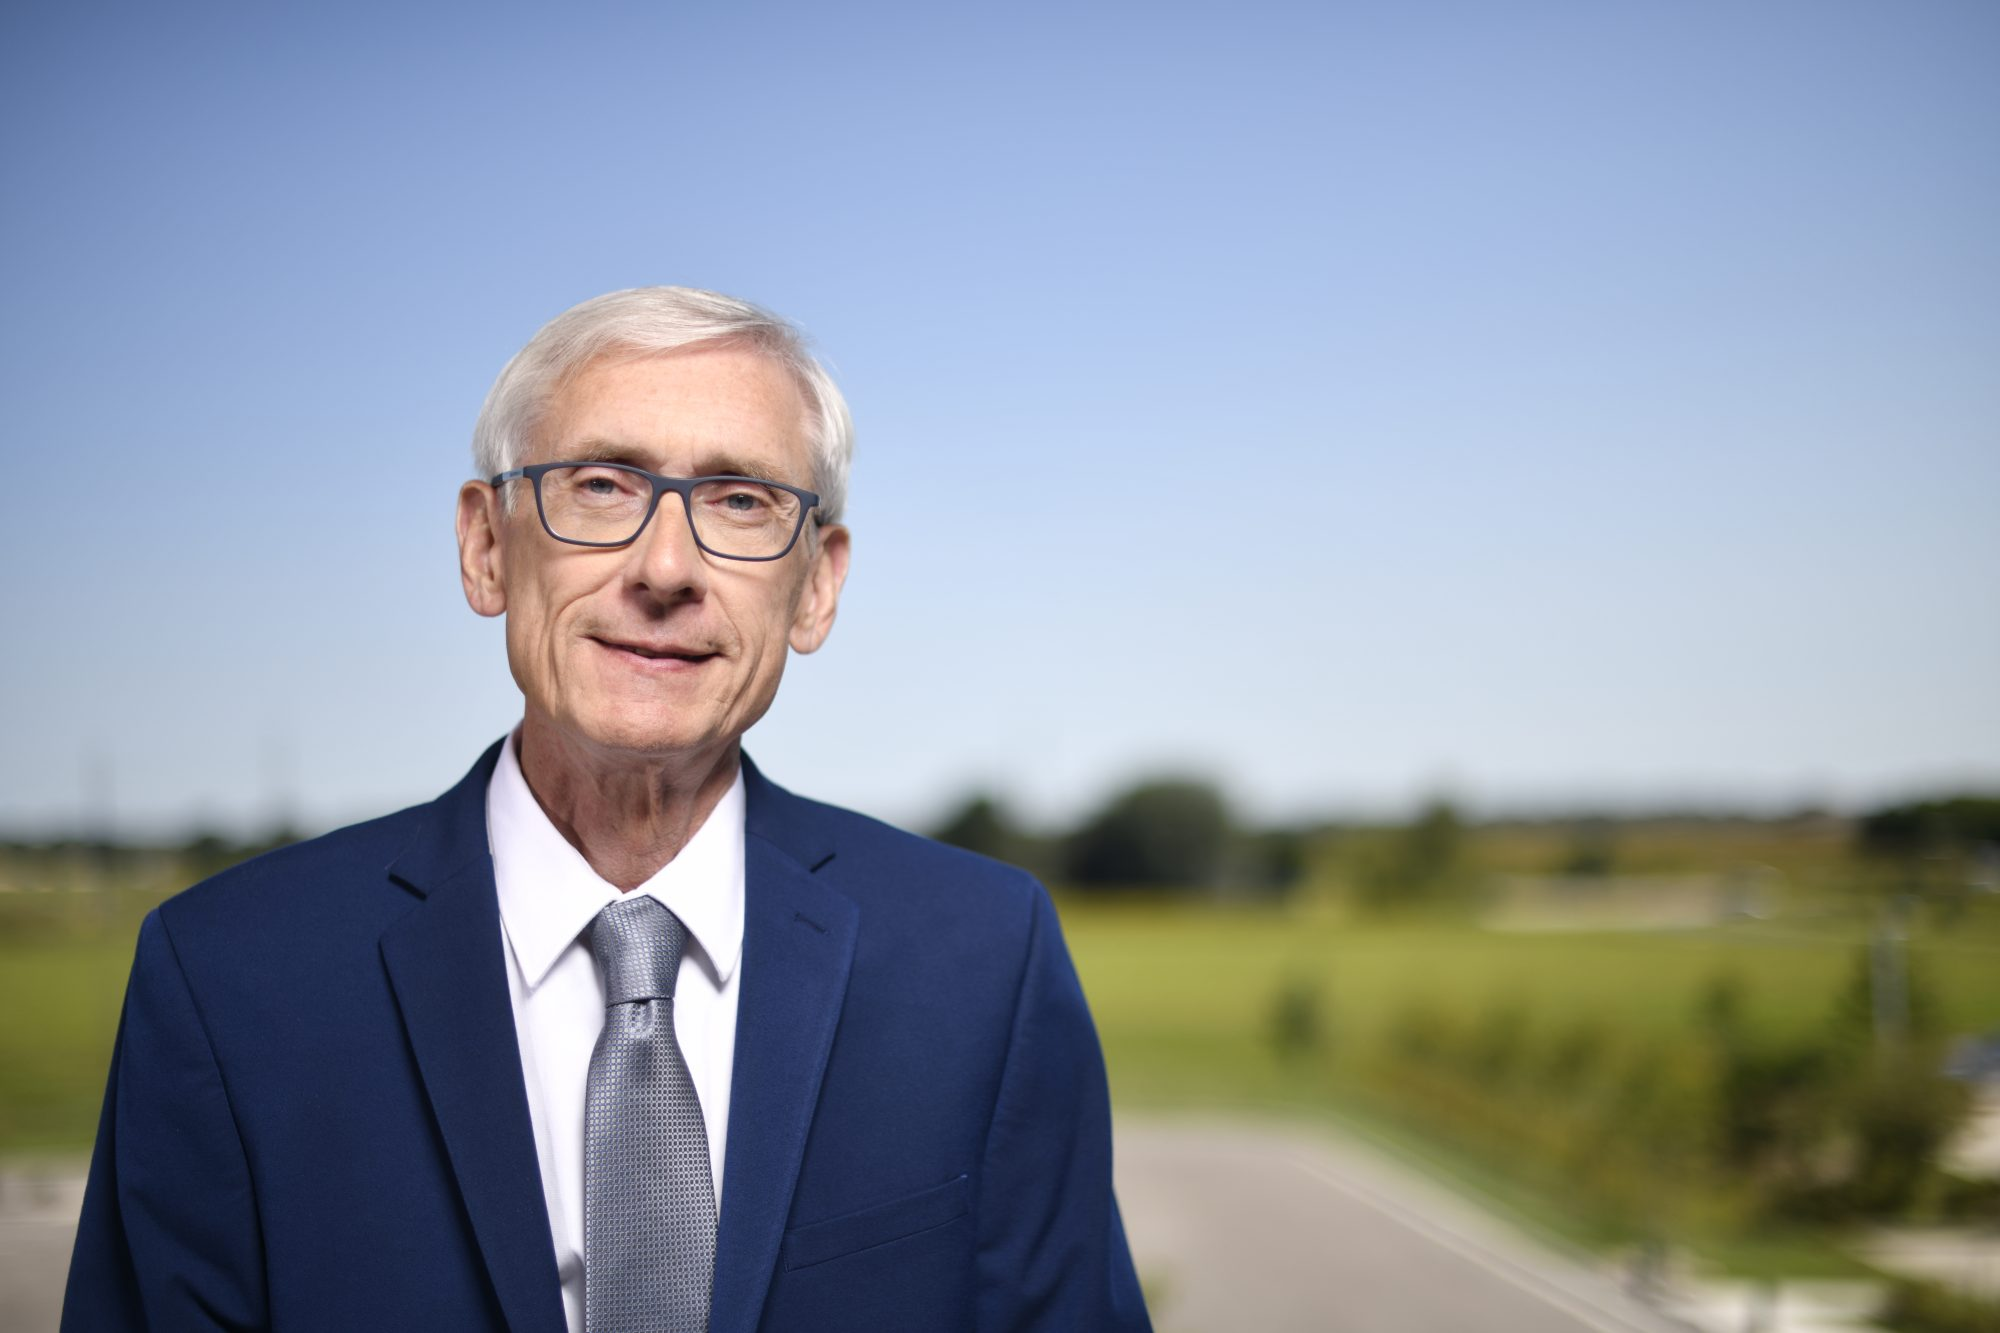 Gov. Evers Announces $30 Million Investment in Alliant Energy Center Expansion